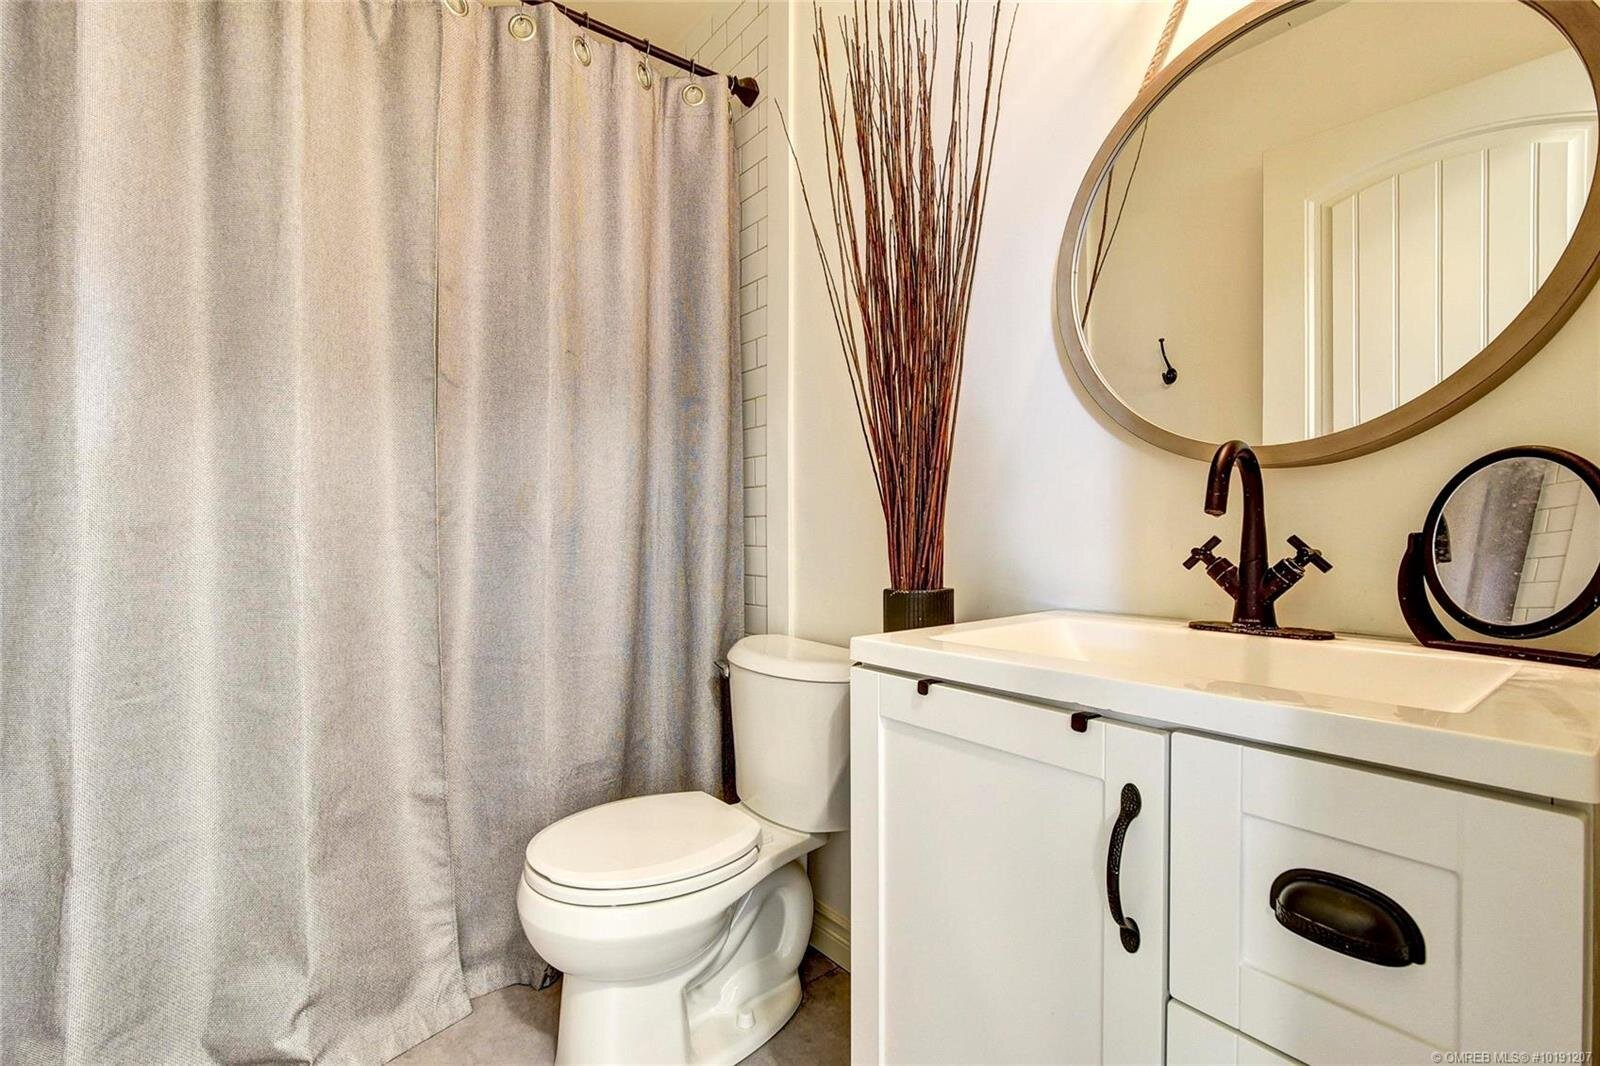 505-hollywood-road-south-farmhouse-inspired-family-home-kelowna-rutland-bathroom-1.jpg